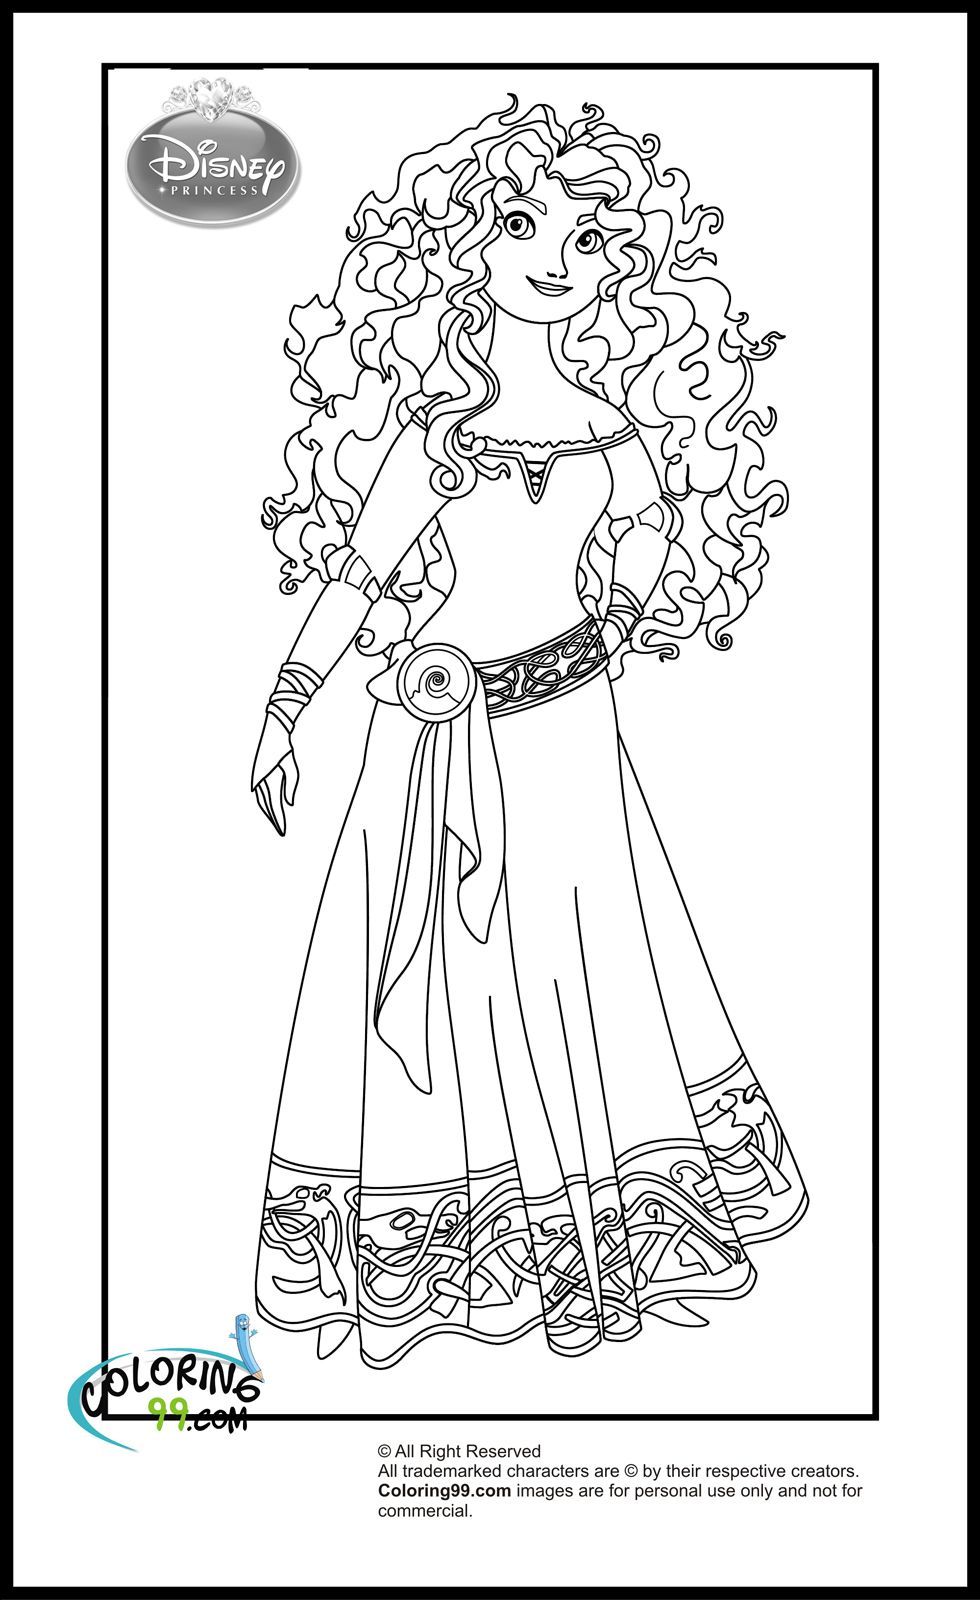 Fans Request Disney Princess With Merida From Brave Coloring Pages Minister Co Disney Princess Coloring Pages Princess Coloring Pages Disney Coloring Pages